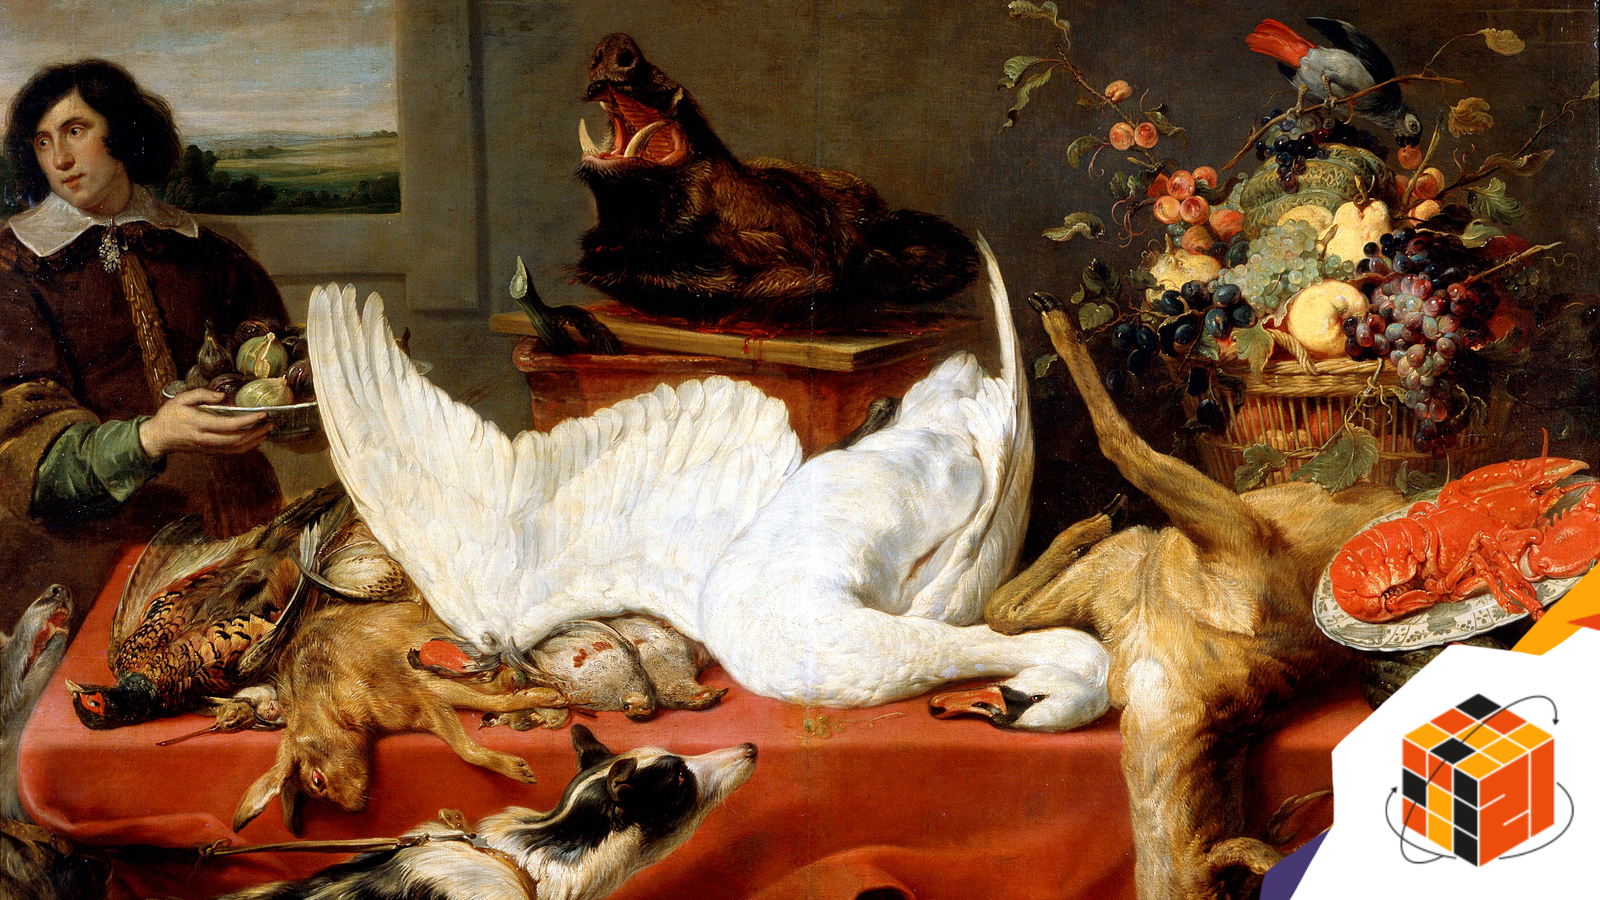 'Still life with a Swan', 1640s. Artist: Frans Snyders